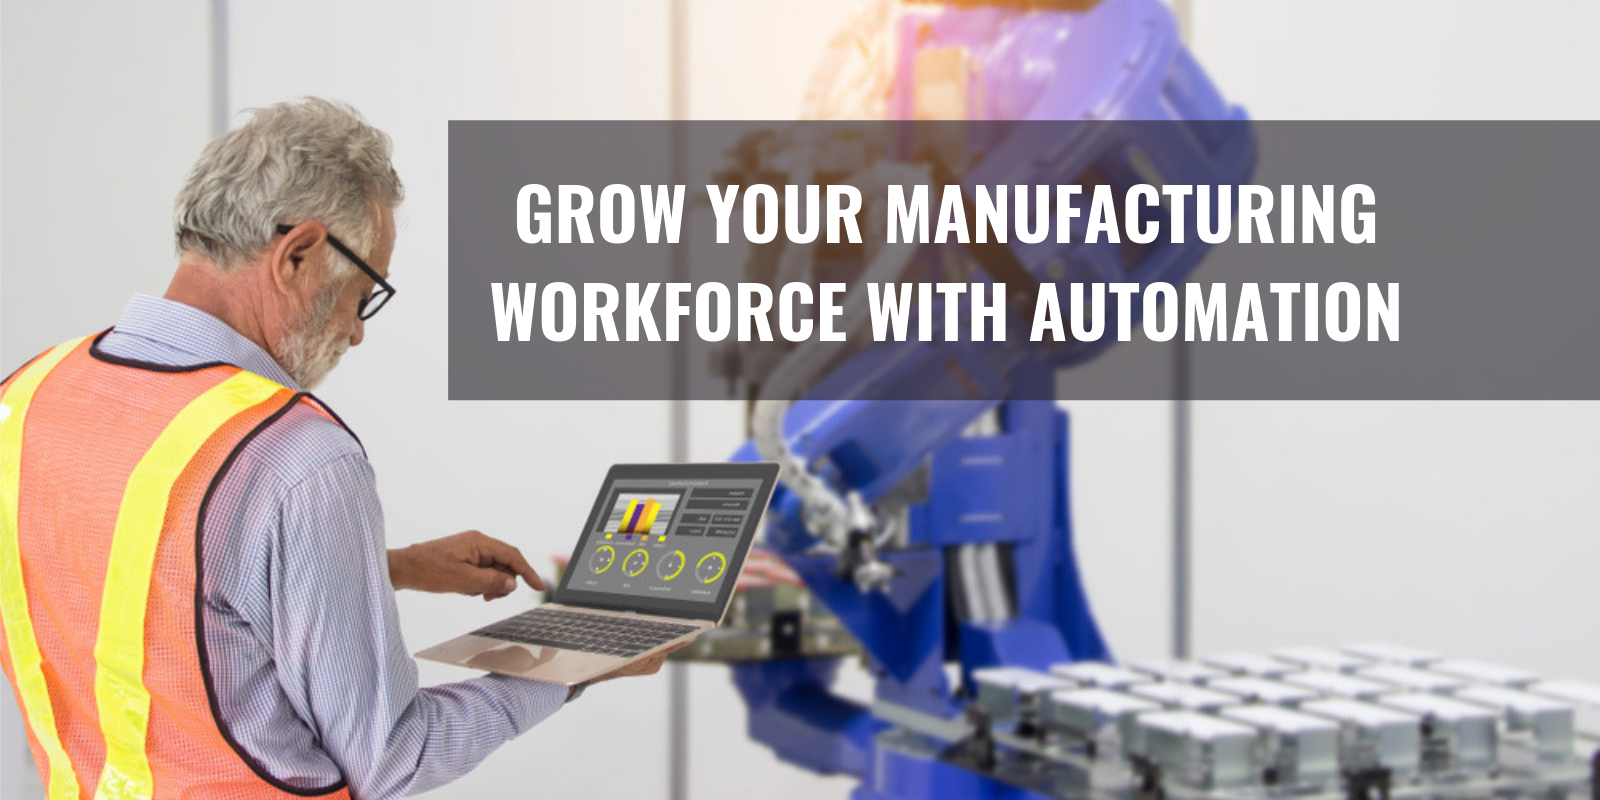 Grow Your Workforce - Featured